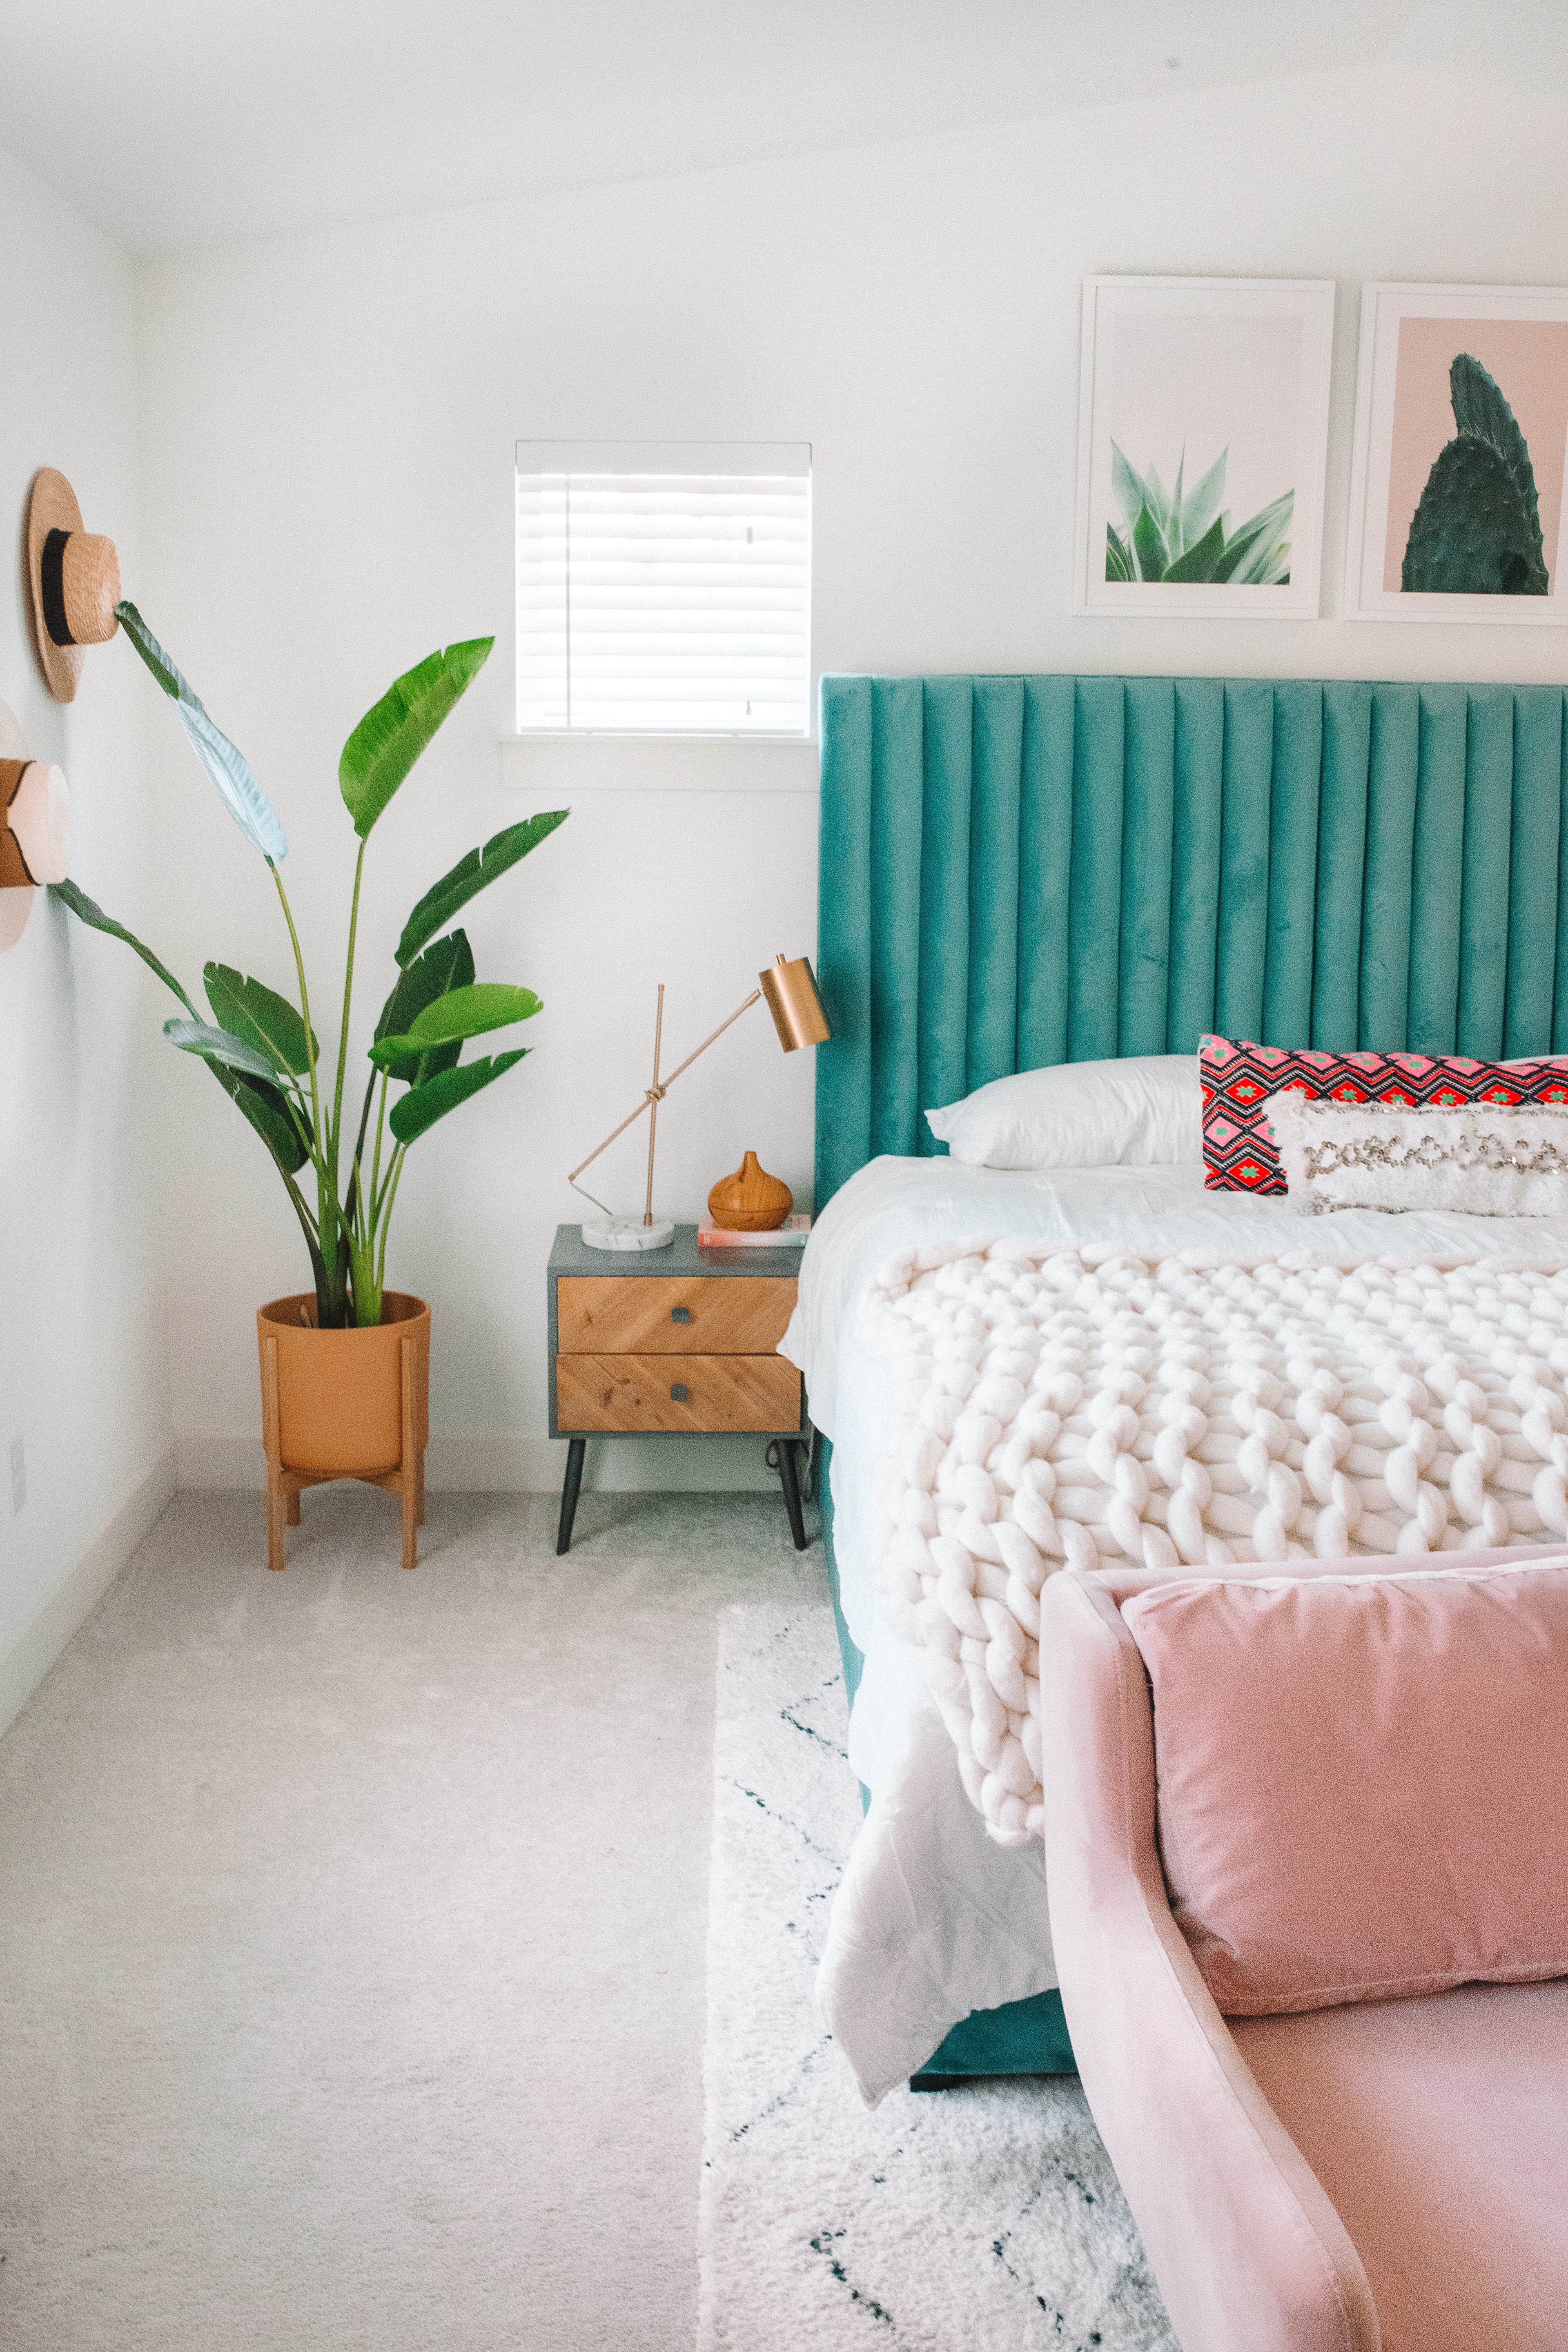 How To Create a Relaxing Bedroom Sanctuary + Bedroom Decor Ideas